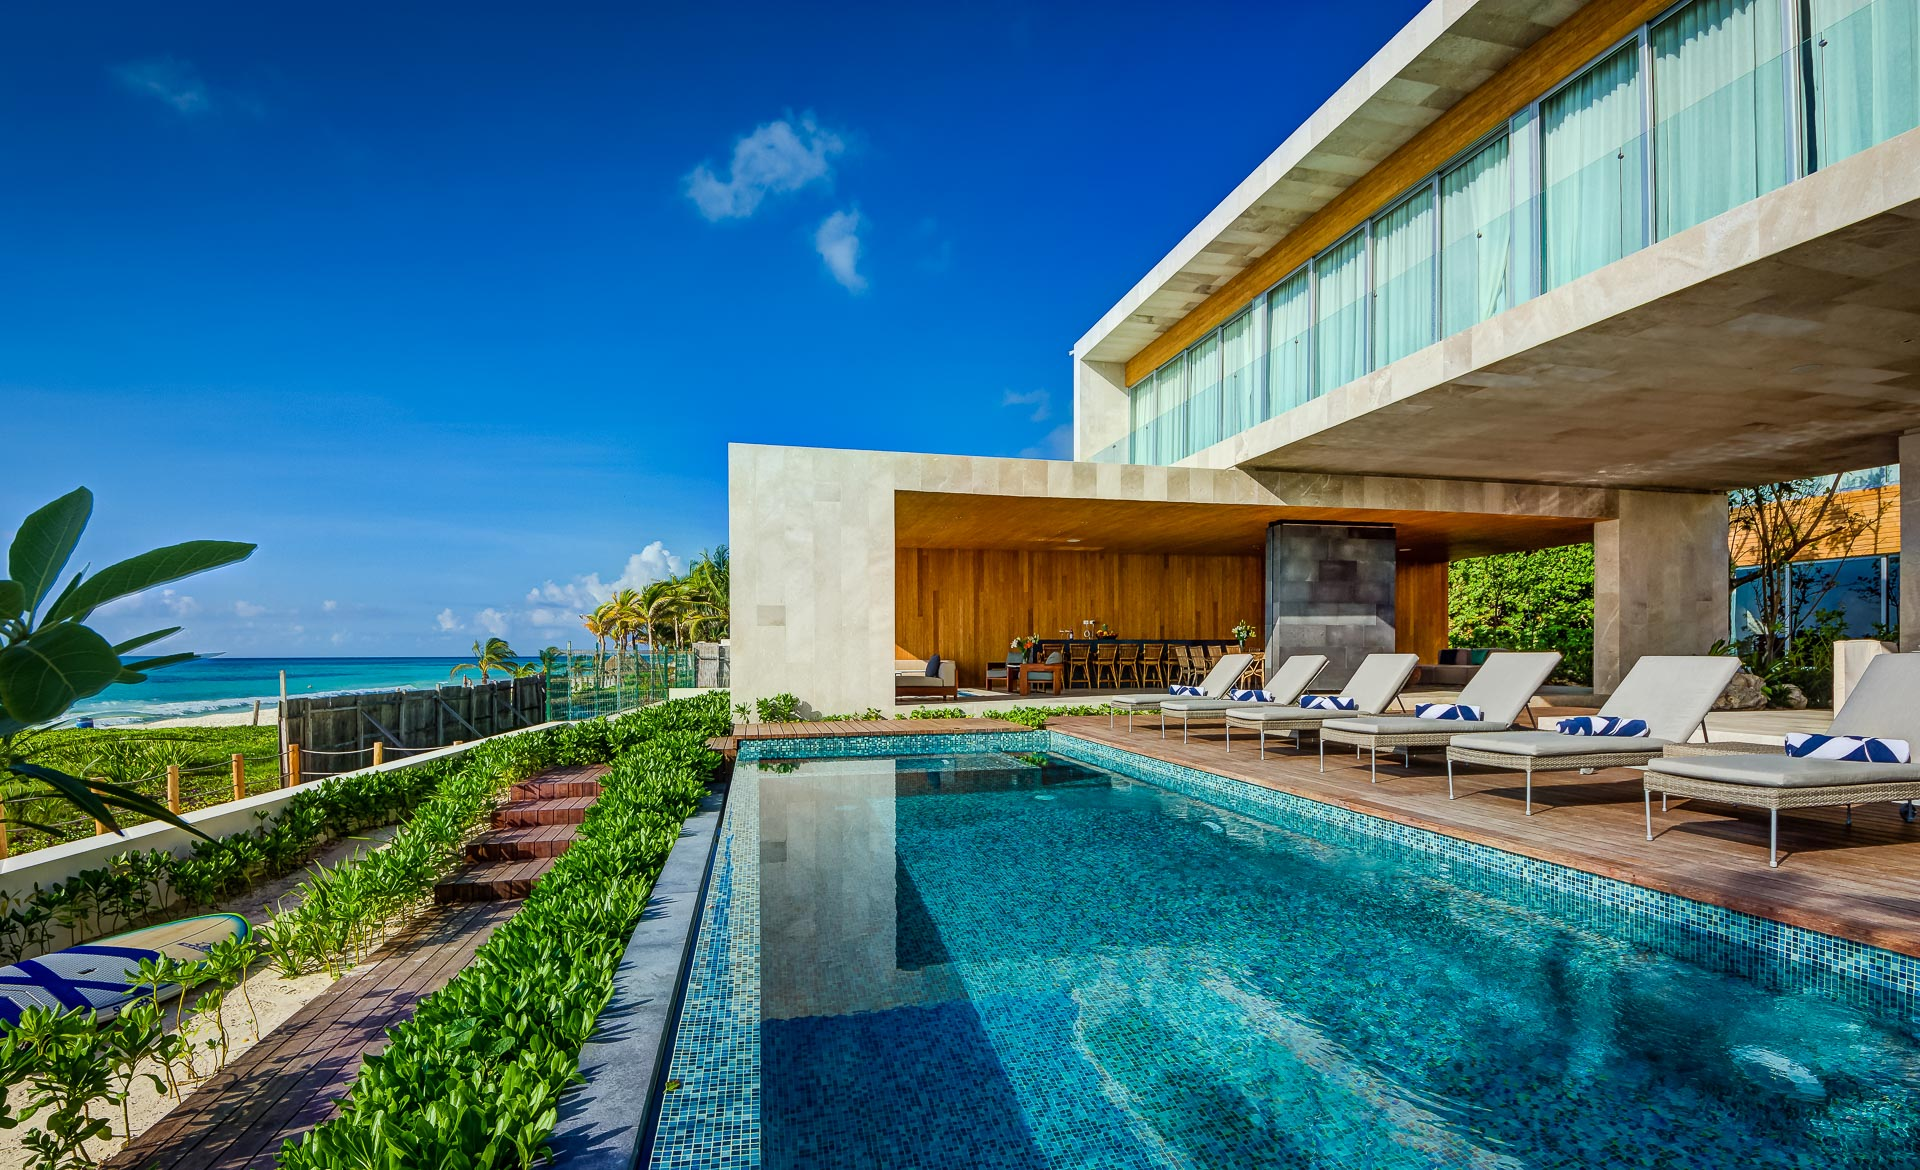 Live your dream vacation - In the house of your dreams